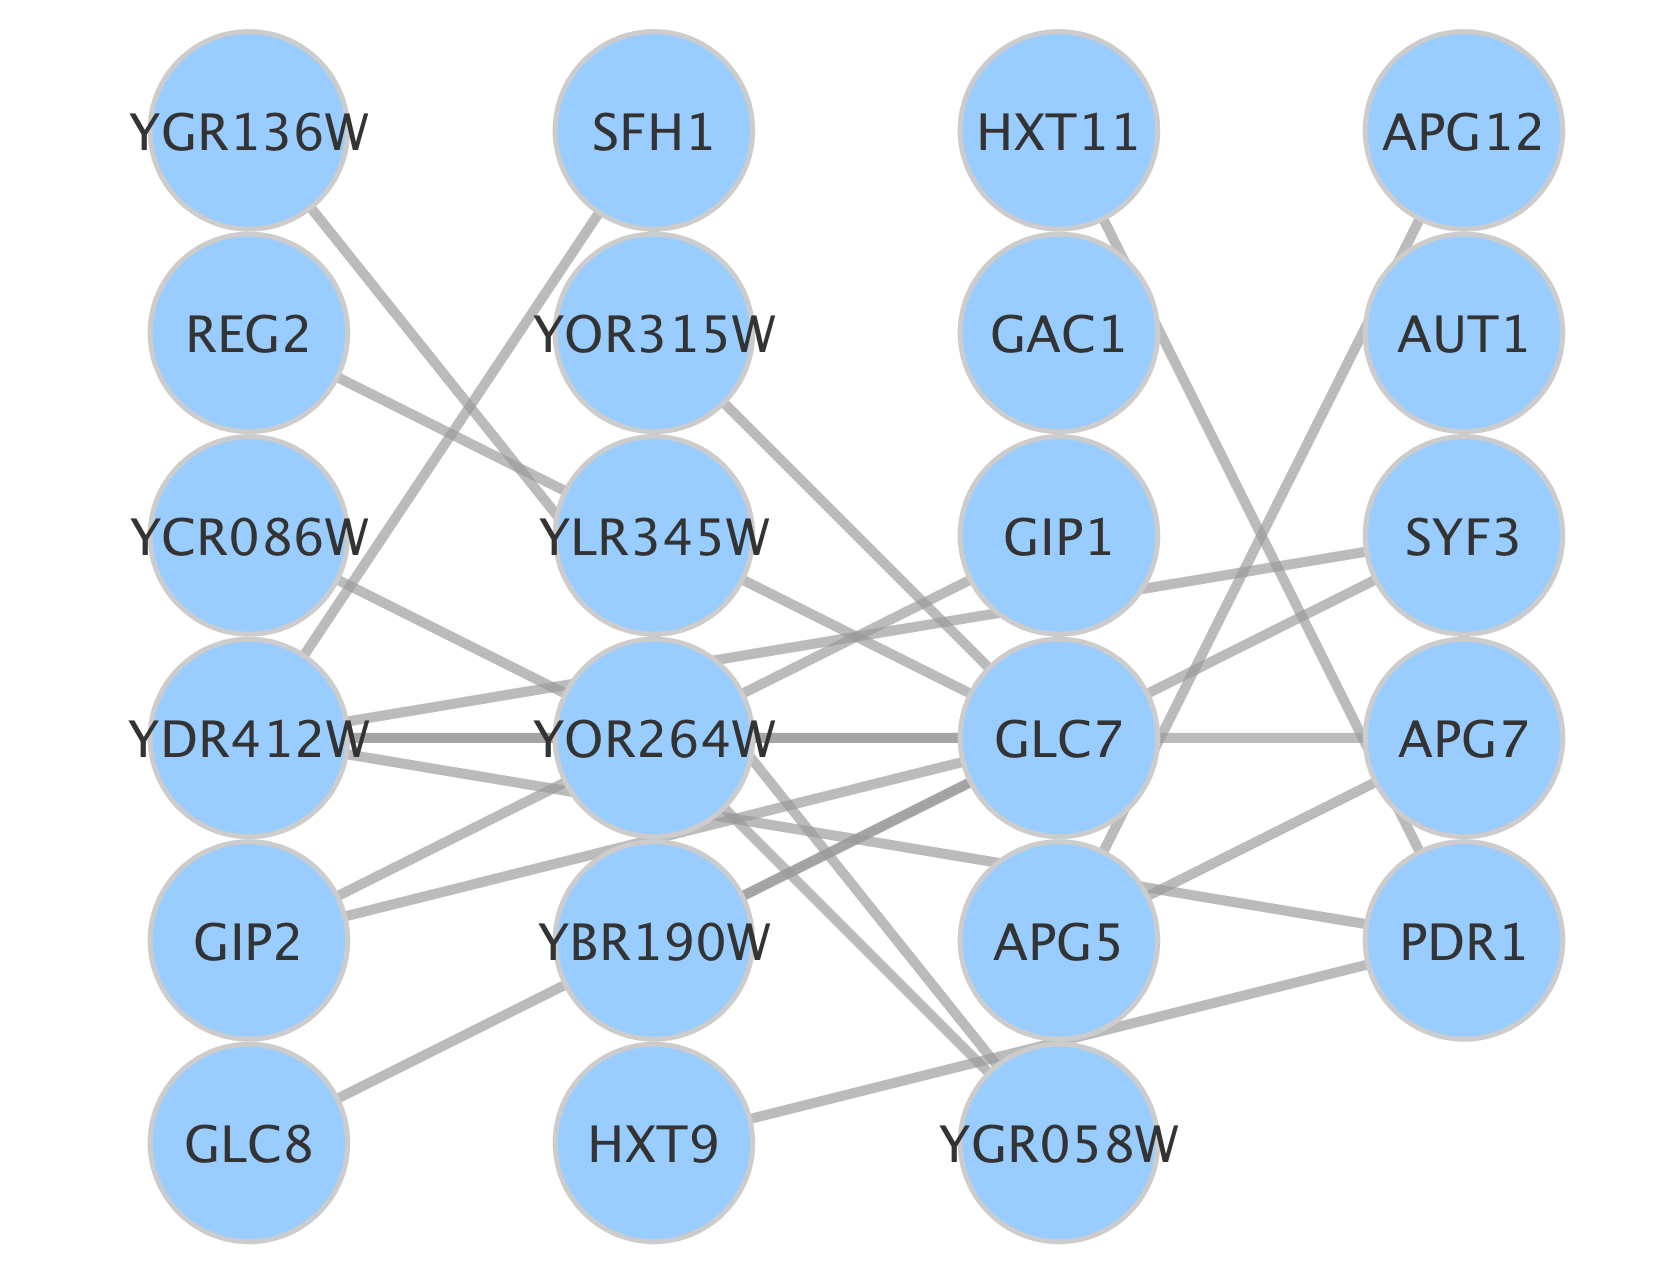 Network Visualization with Cytoscape